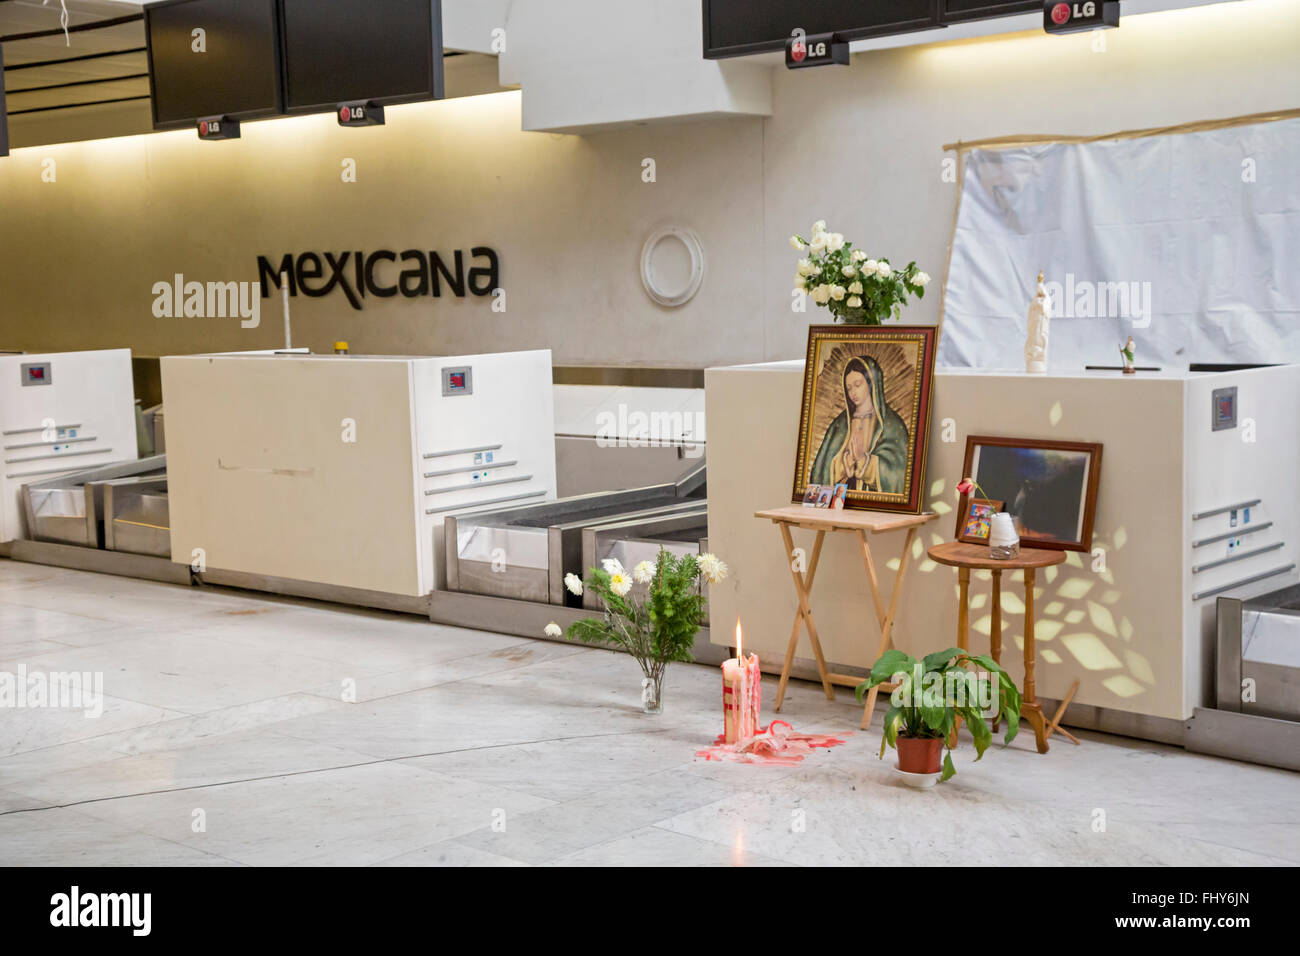 Mexico City, D.F., Mexico - Shrine at airport protests allegedly fraudulent Mexicana Airlines bankruptcy. - Stock Image